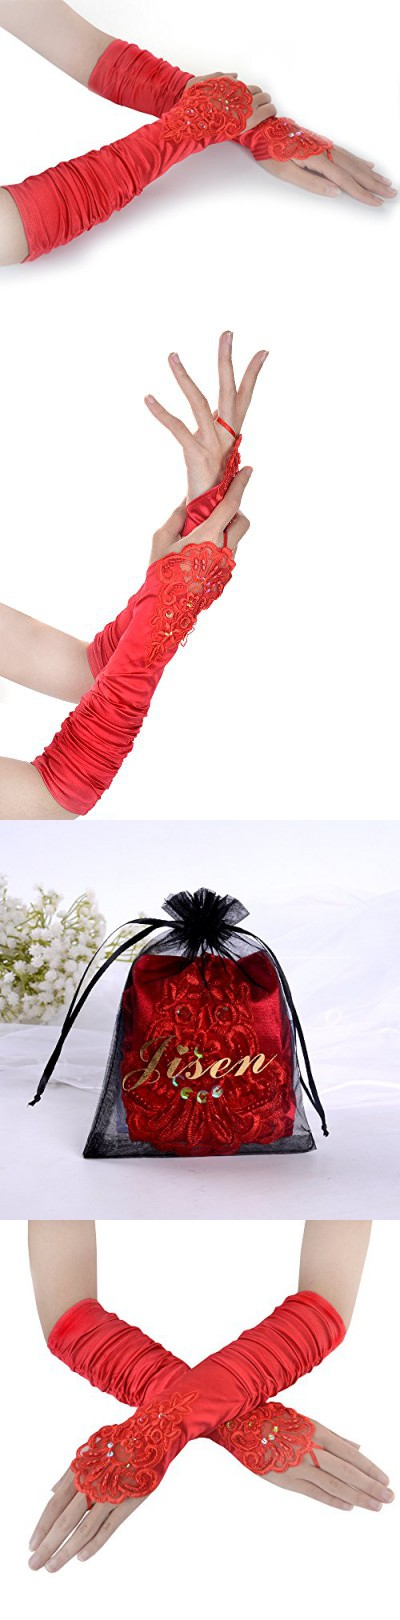 JISEN Ladies's Fingerless Gathered and Beaded Fold Floral Embroidery Lace & Sequins Satin Bridal Party Gloves 15 (Red)